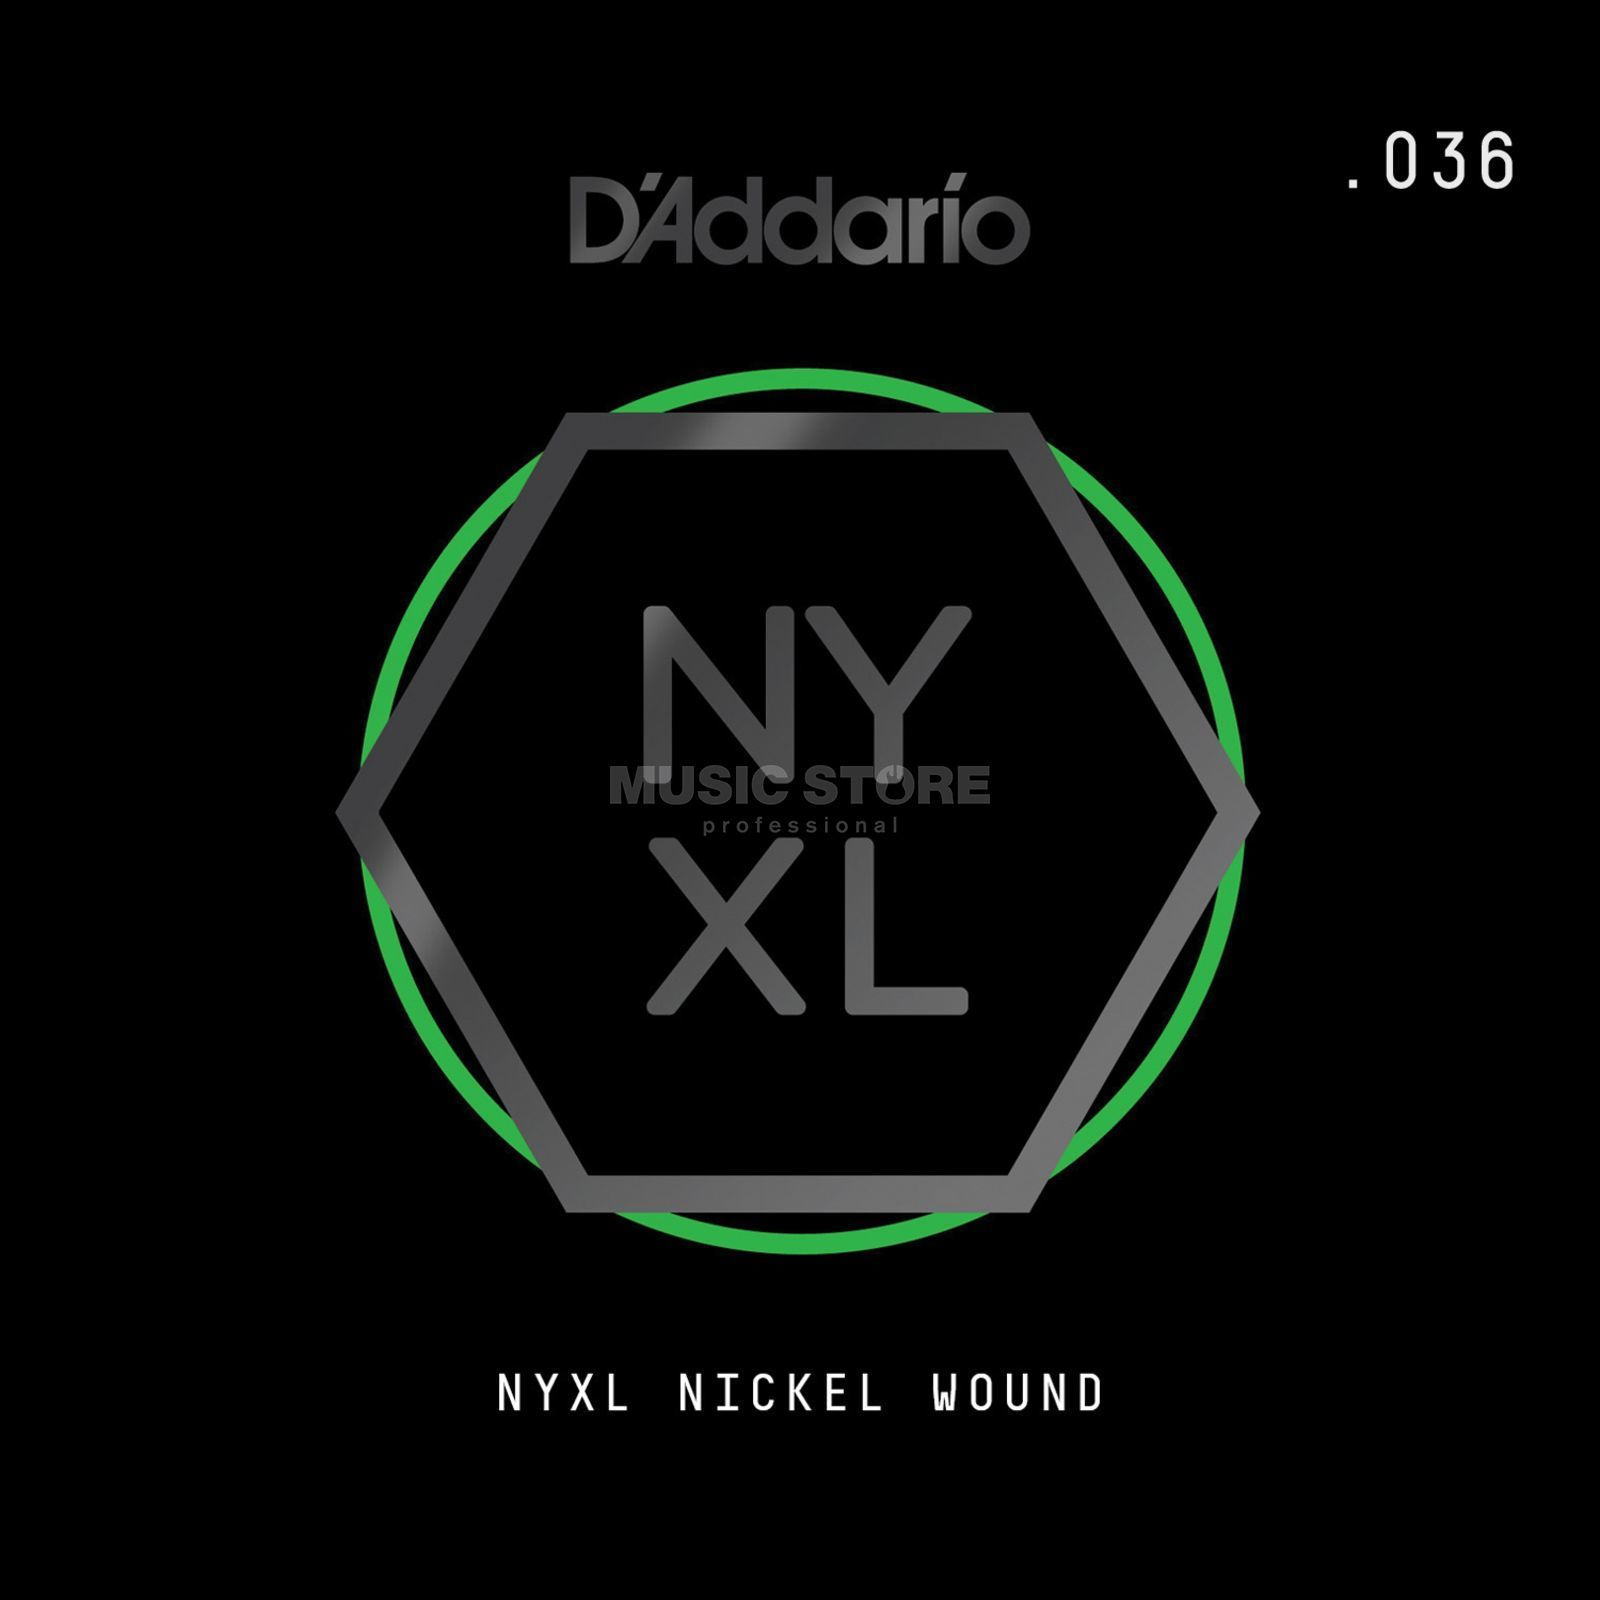 D'Addario NYNW036 Single String Nickel Wound Product Image